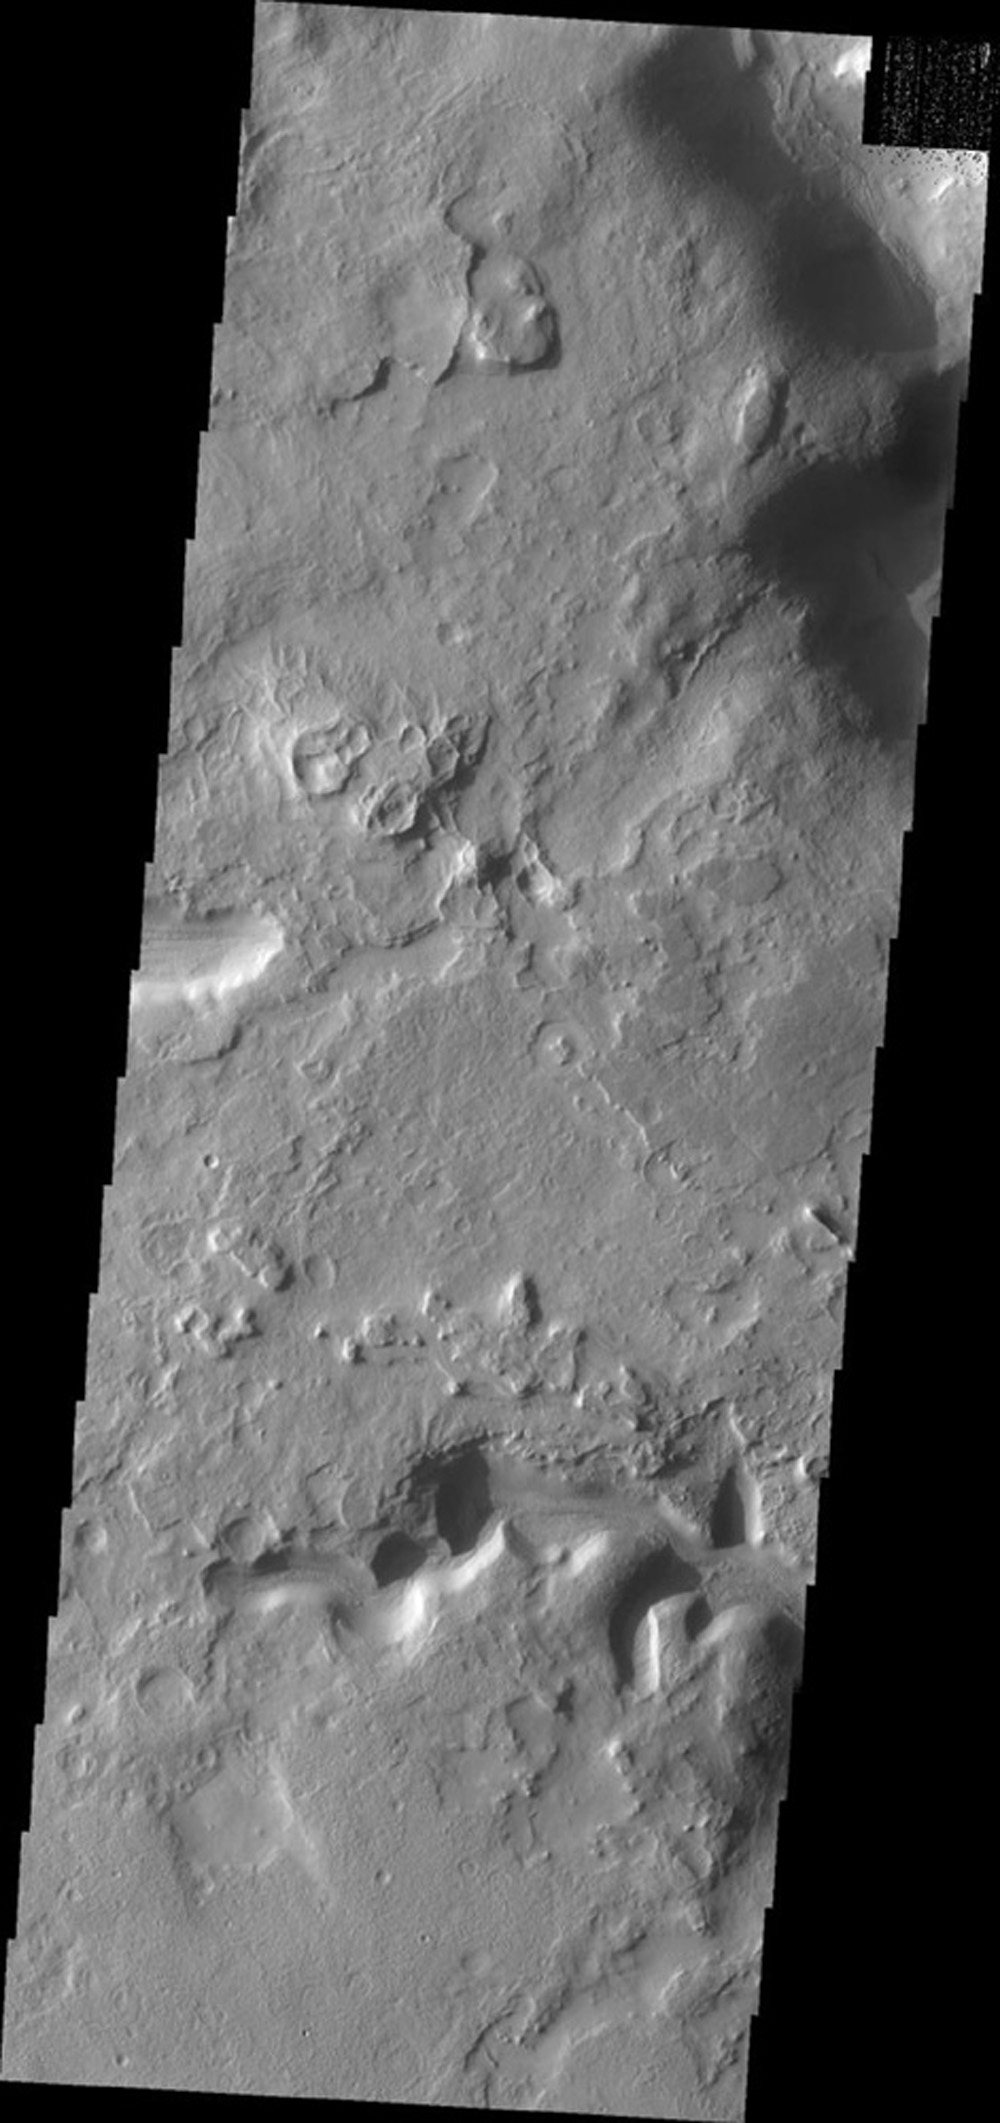 This image from NASA's Mars Odyssey shows channels located on the eastern and northern margins of Terra Sabaea on Mars. Dunes are located on the floor of the channel.